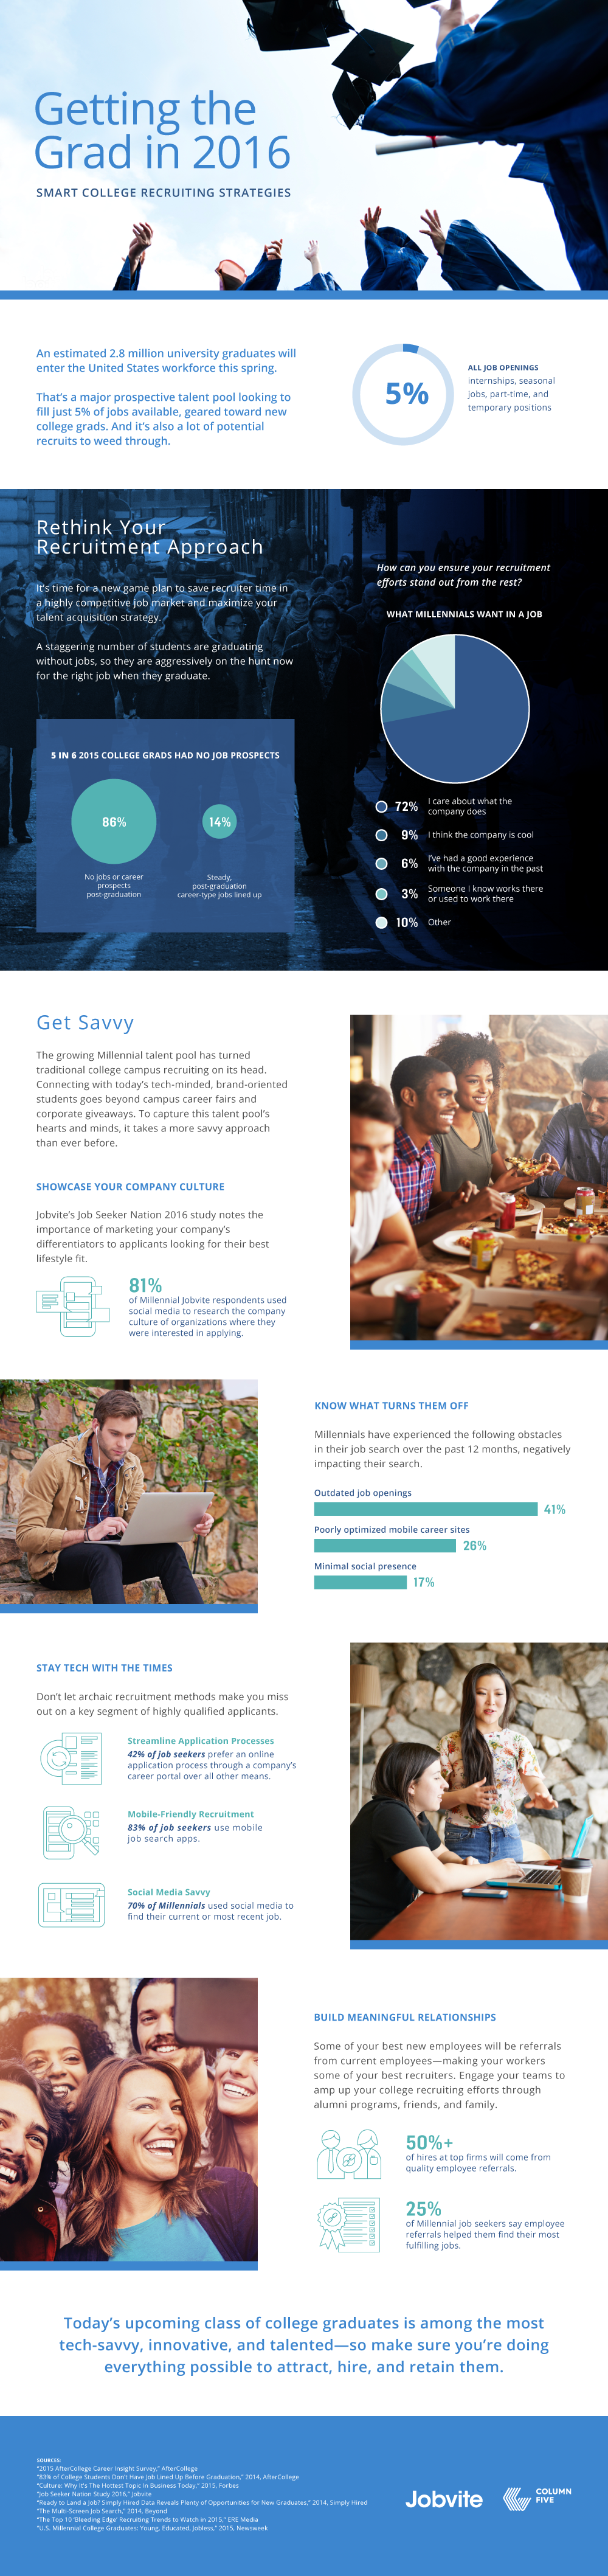 Smart College Recruiting Strategies infographic